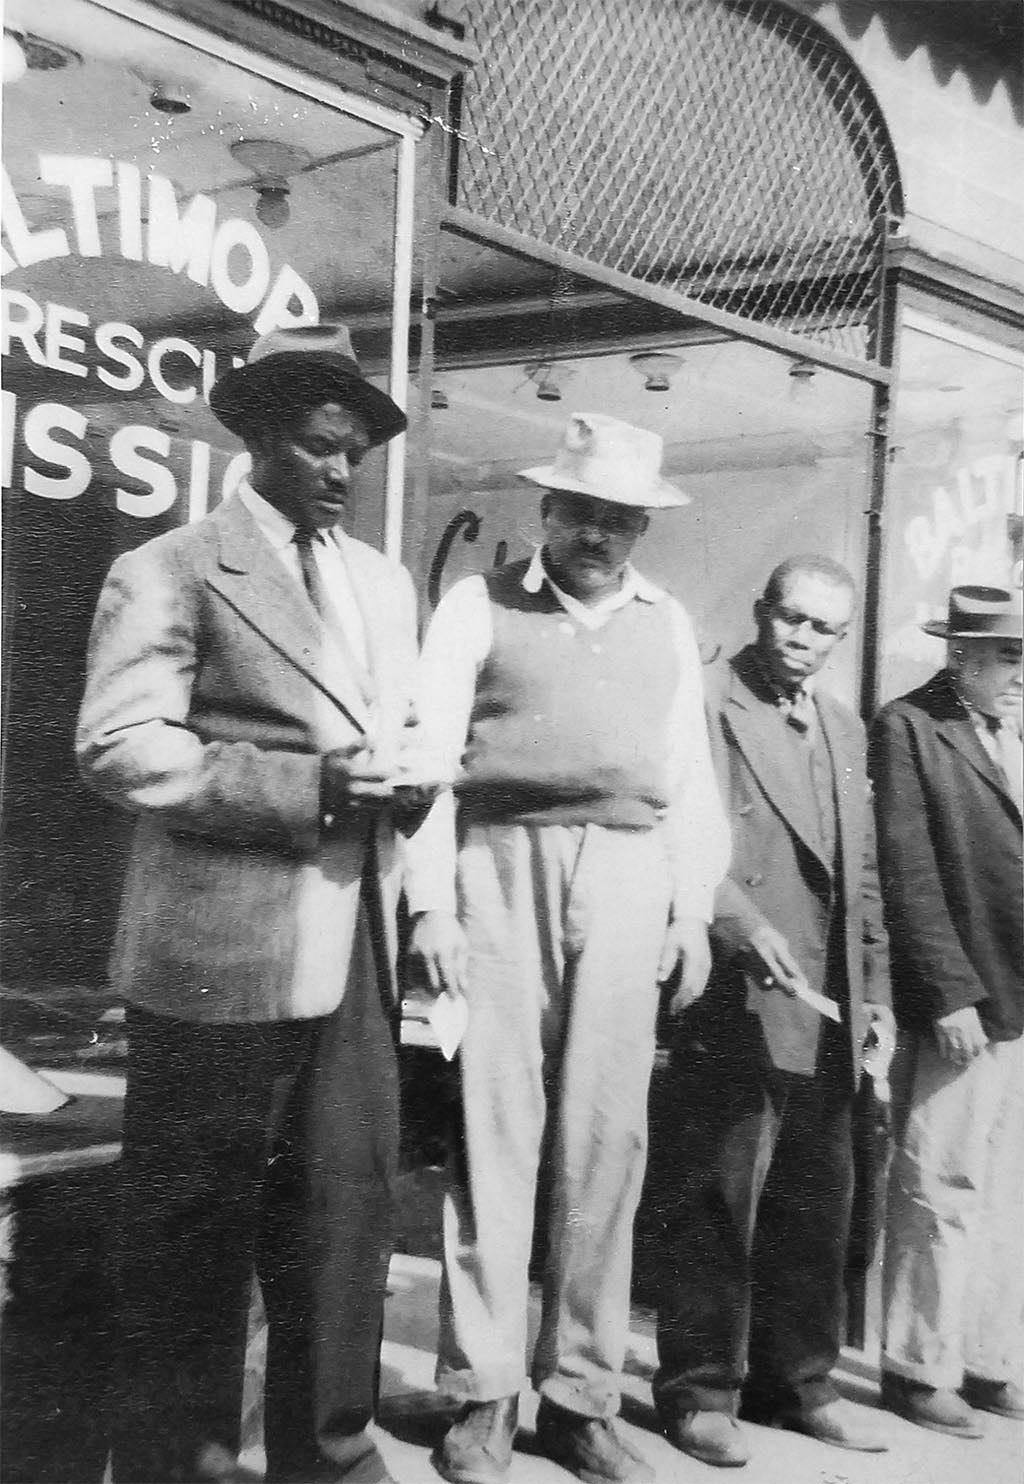 A group of men outside the Baltimore Rescue Mission, circa 1956